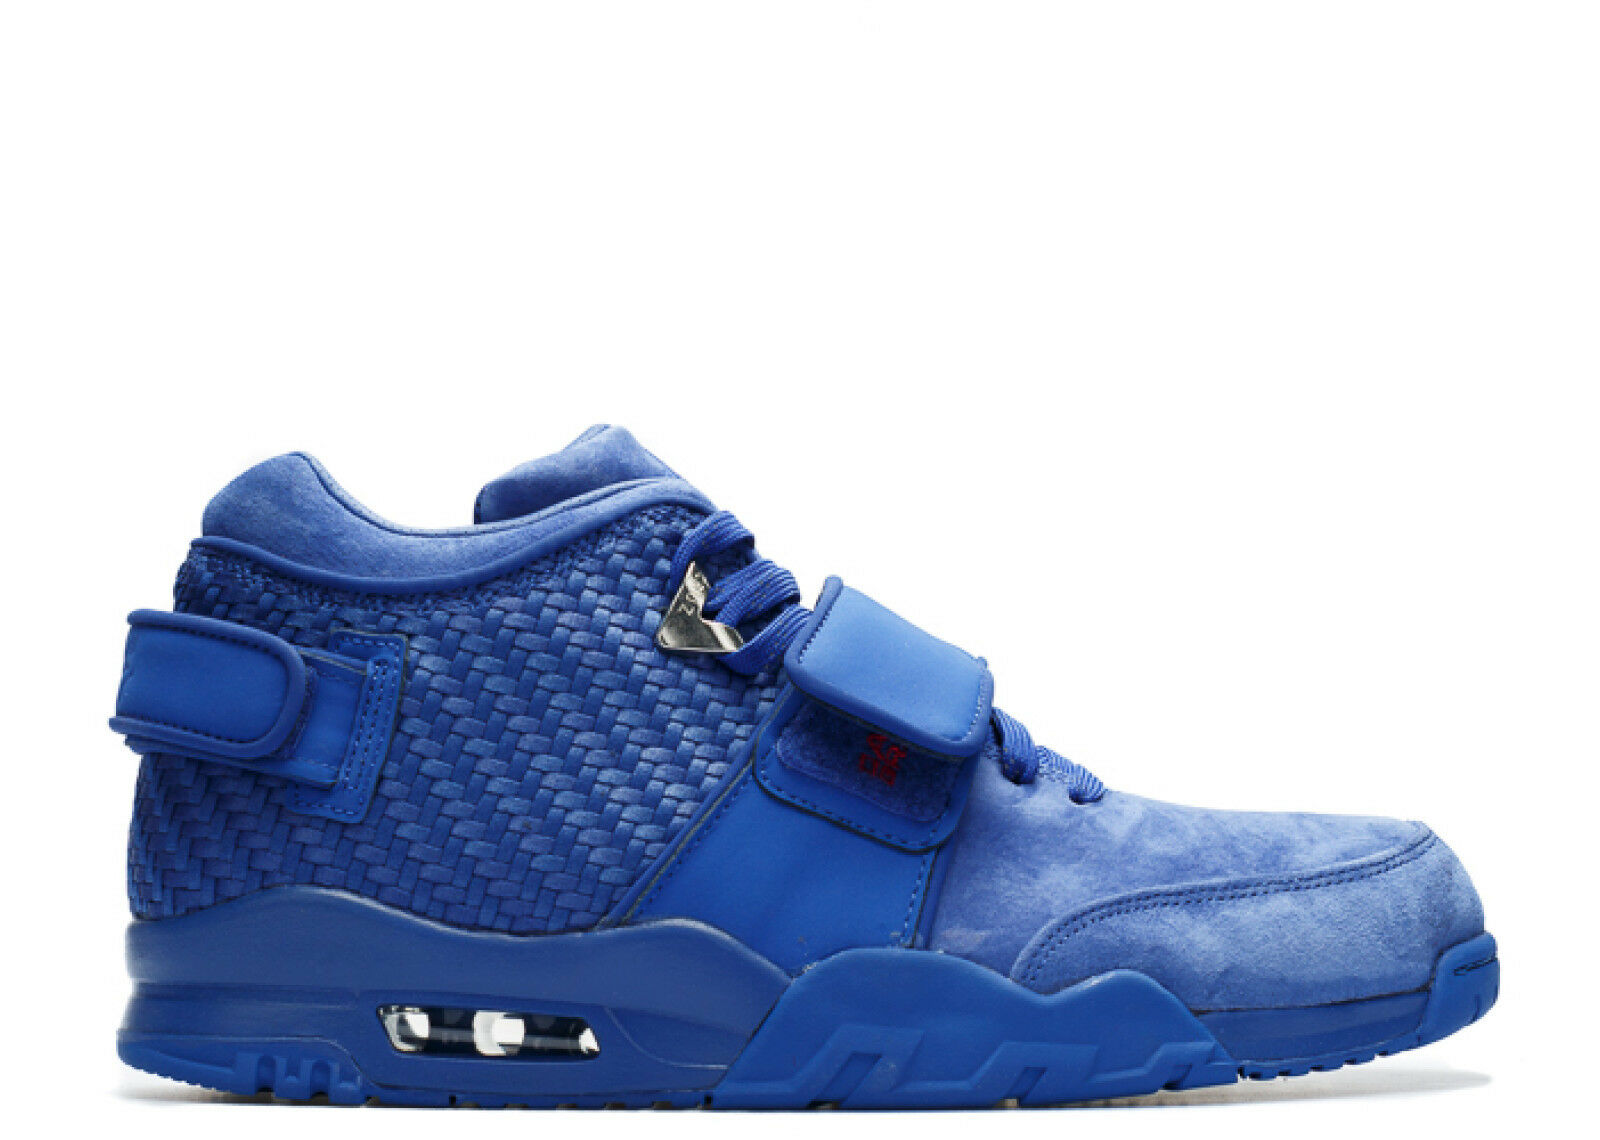 NIKE AIR TRAINER VICTOR CRUZ PREMIUM SUEDE 10.5 R H BLUE 812637-400 NY GIANTS